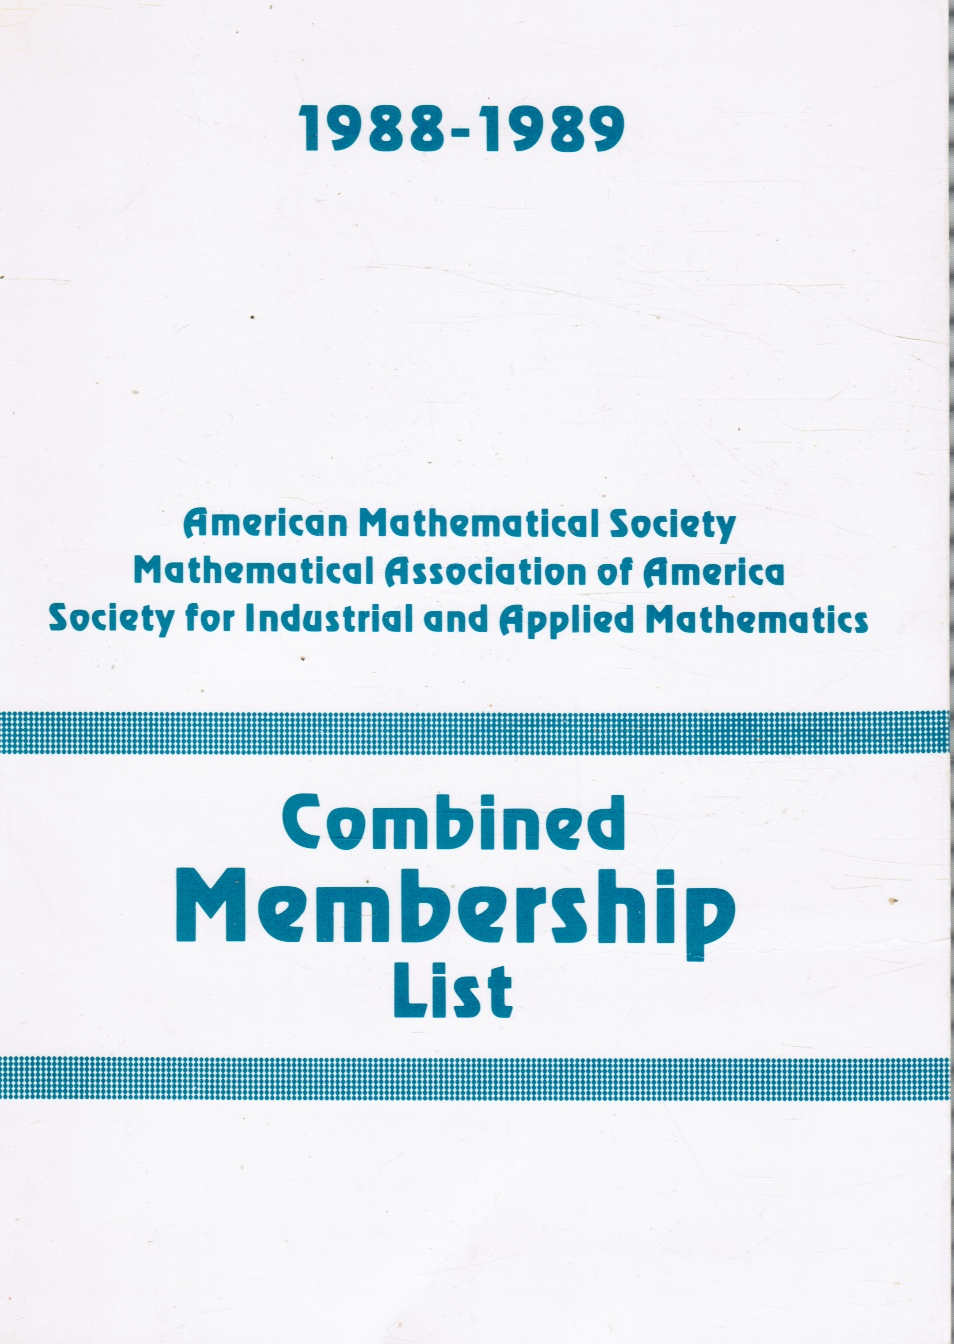 Image for Combined Membership List, 1988-89: American Mathematical Society, Mathematical Association of America, and Society for Industrial and Applied Mathematics